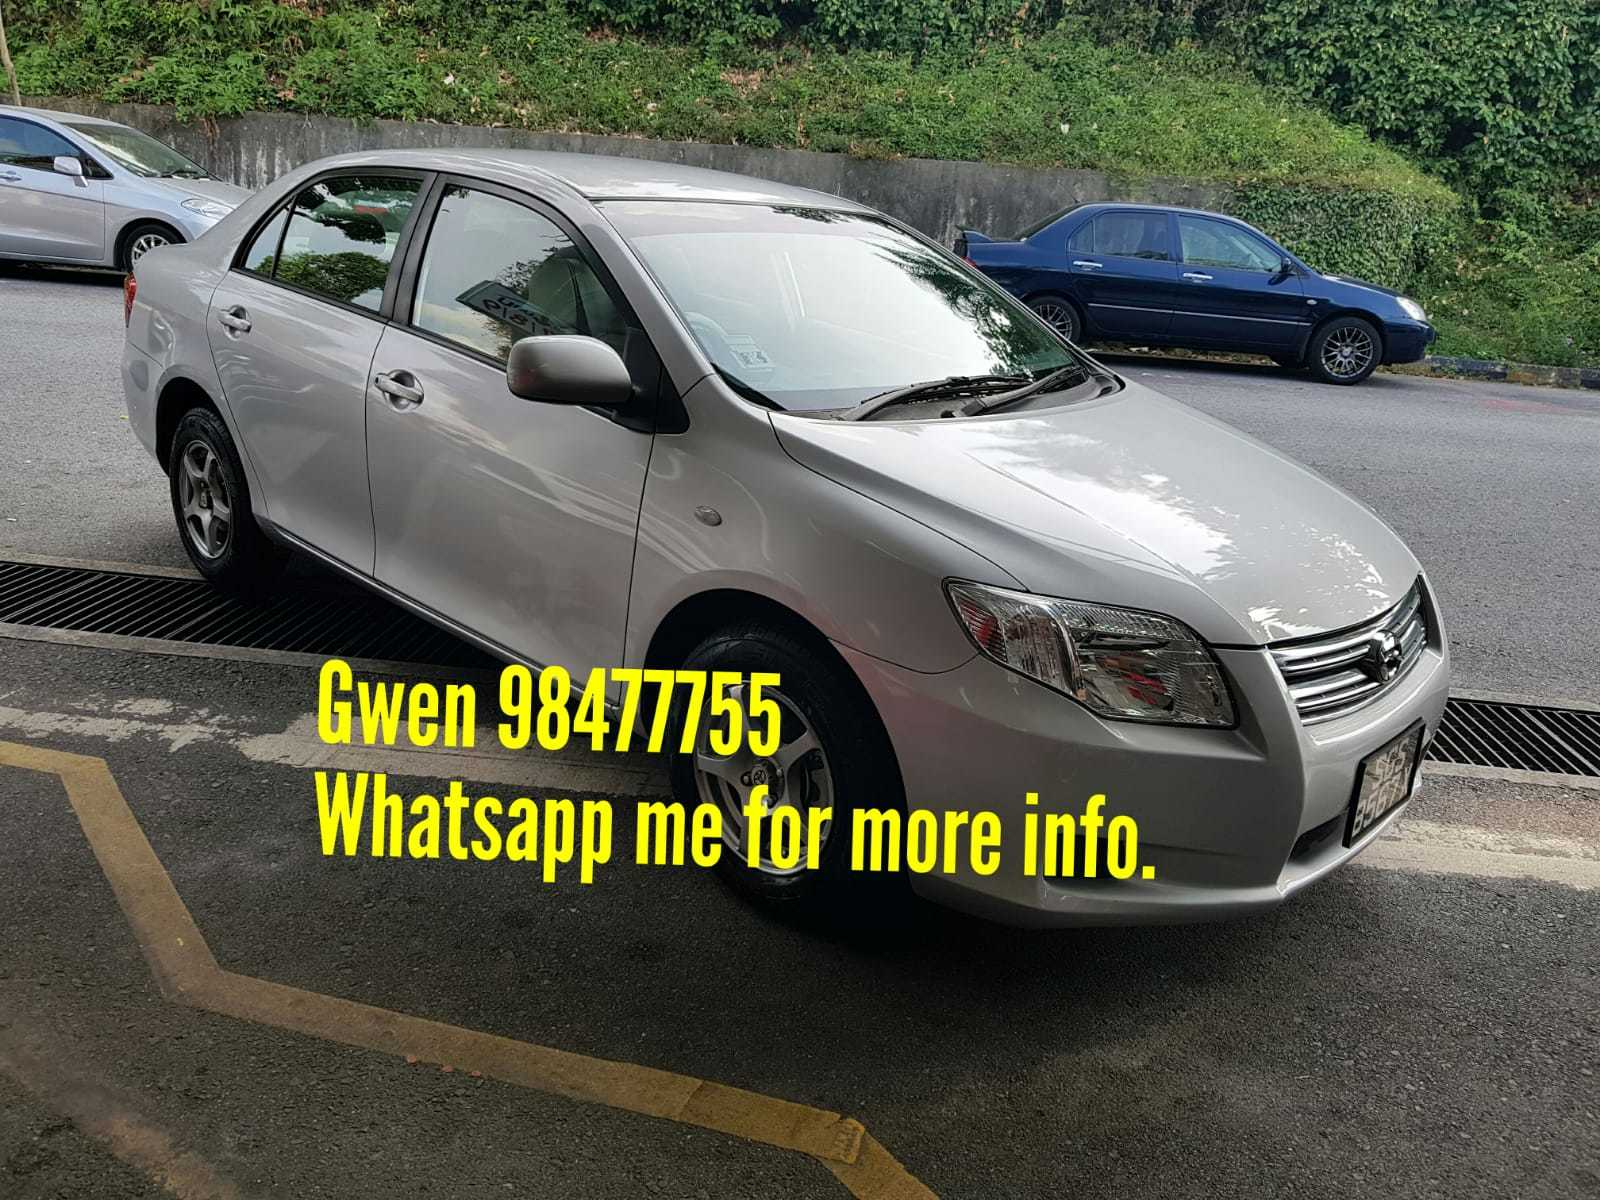 Cars for Sale Near Me $800 New Used toyota Corolla Axio Car In Singapore $24 800 Search Used